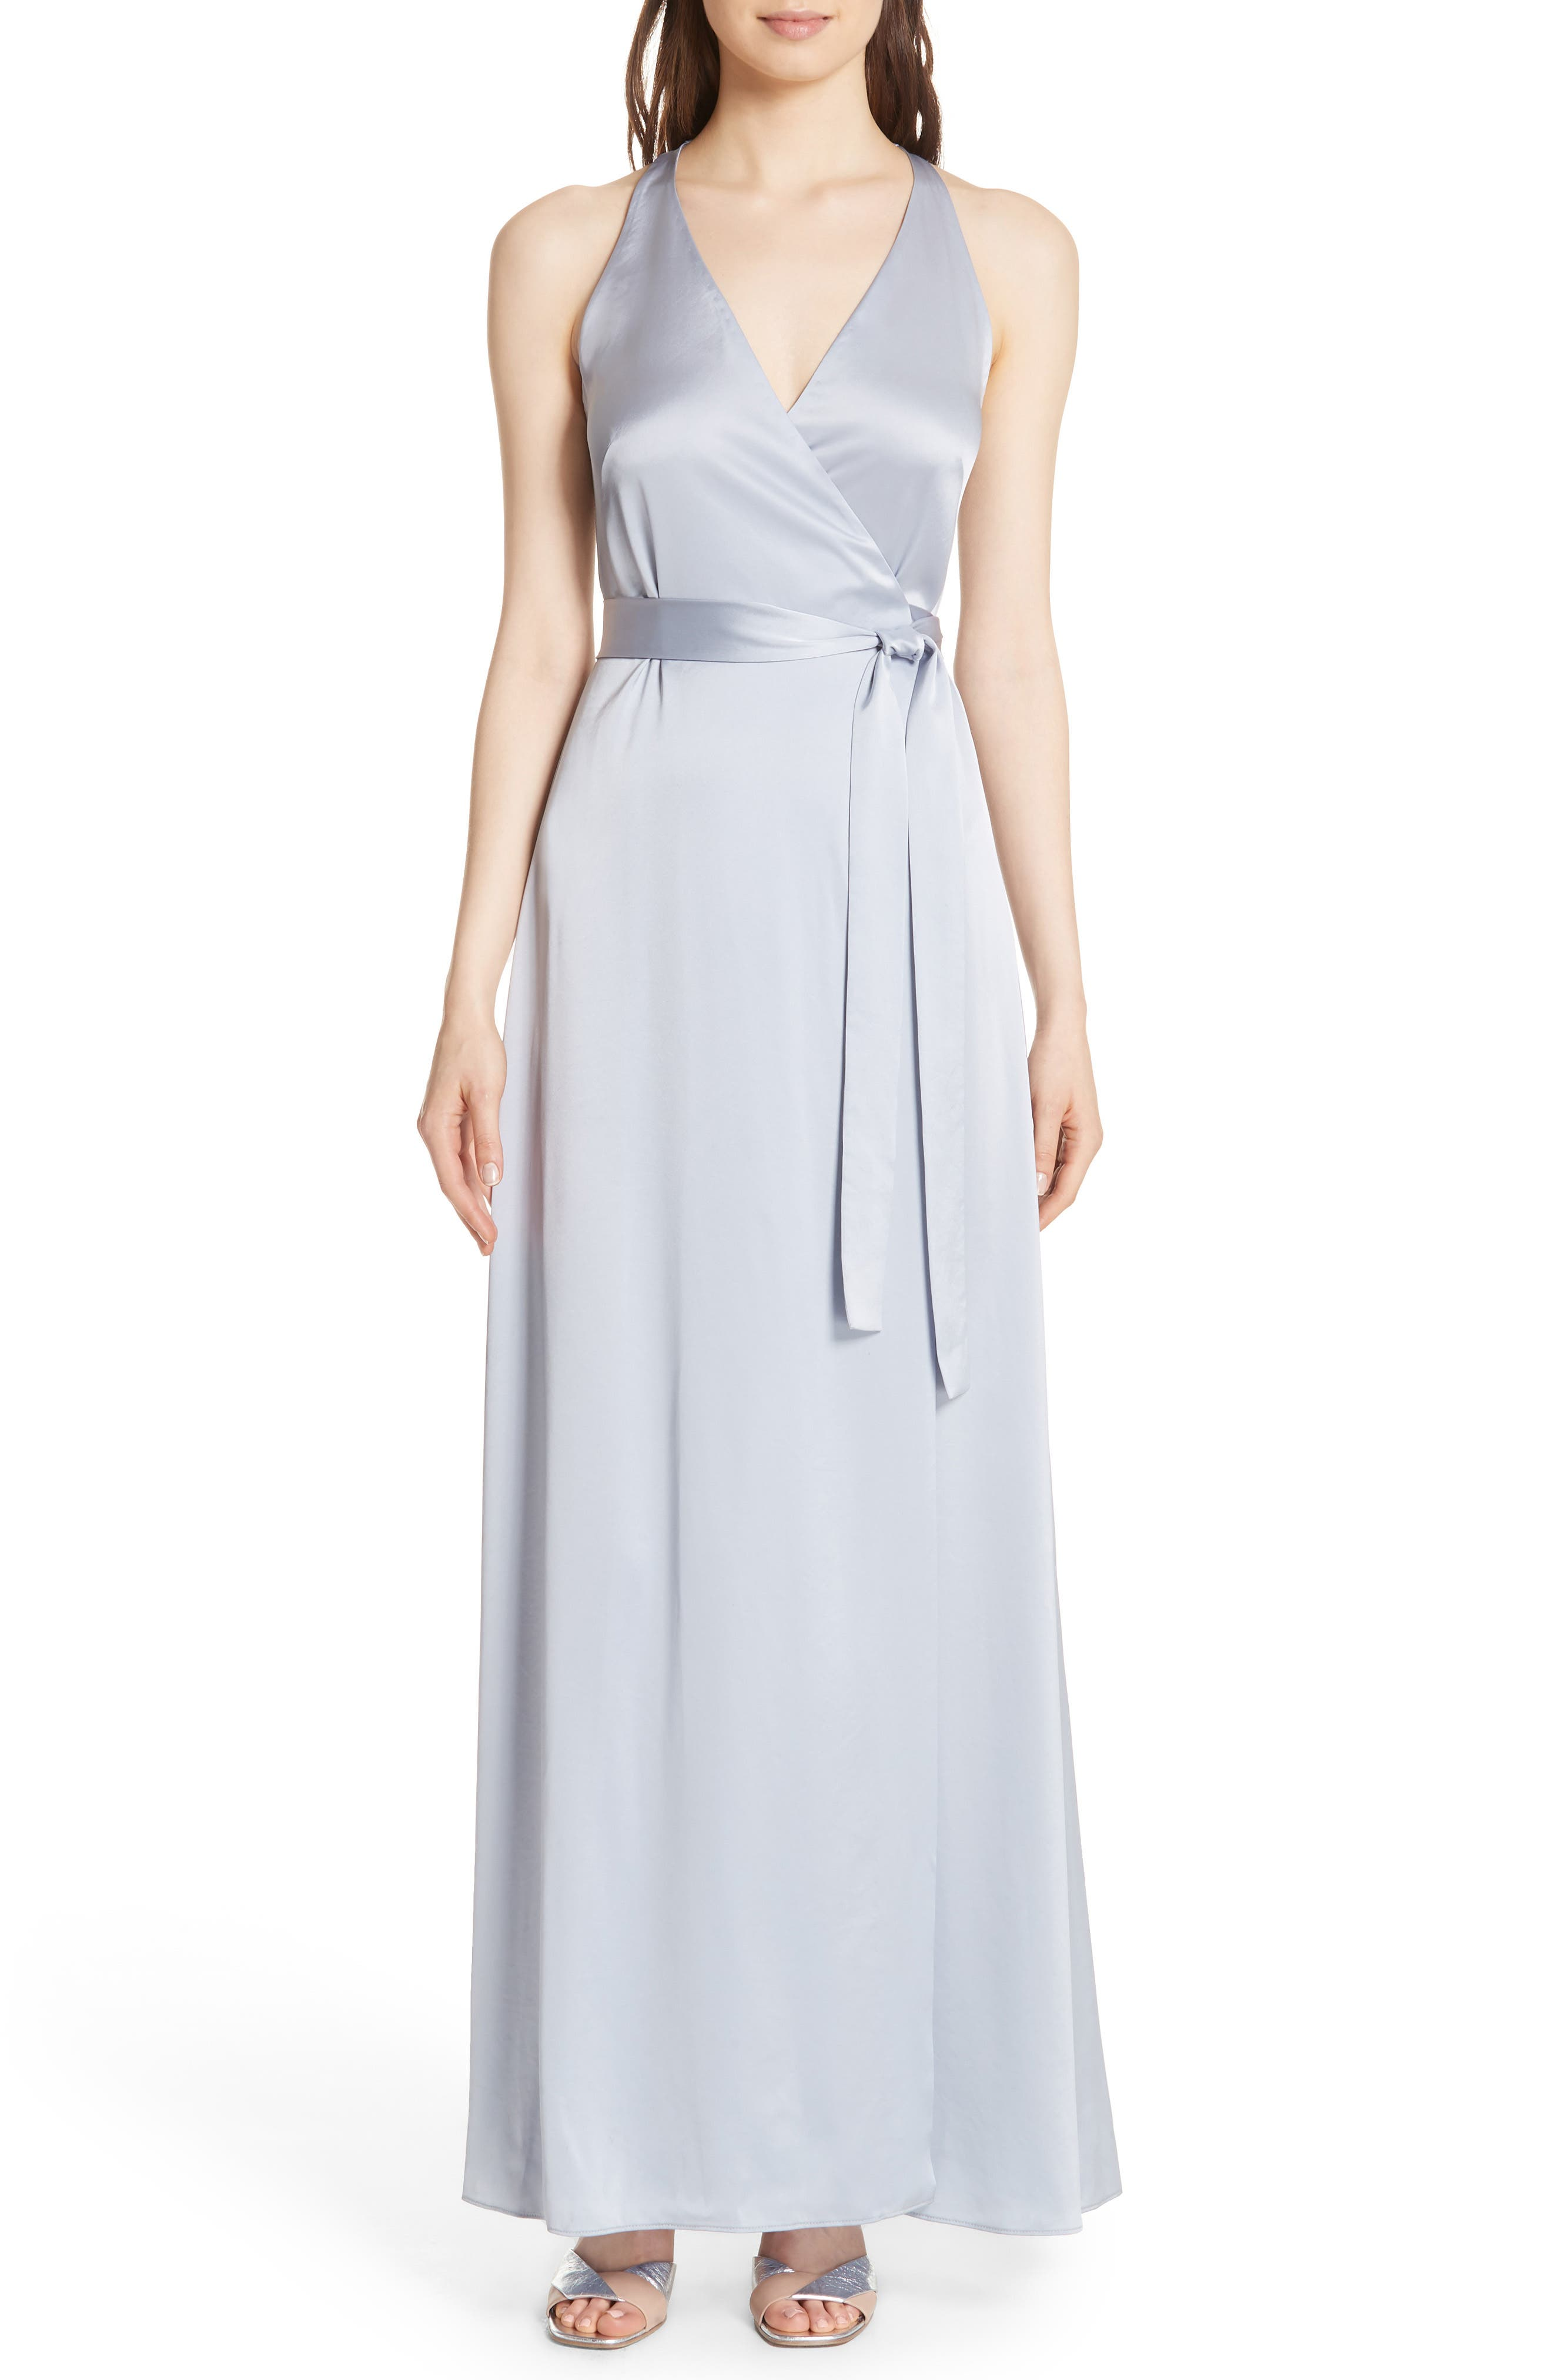 Diane von Furstenberg Wrap Gown,                             Main thumbnail 1, color,                             Smoke